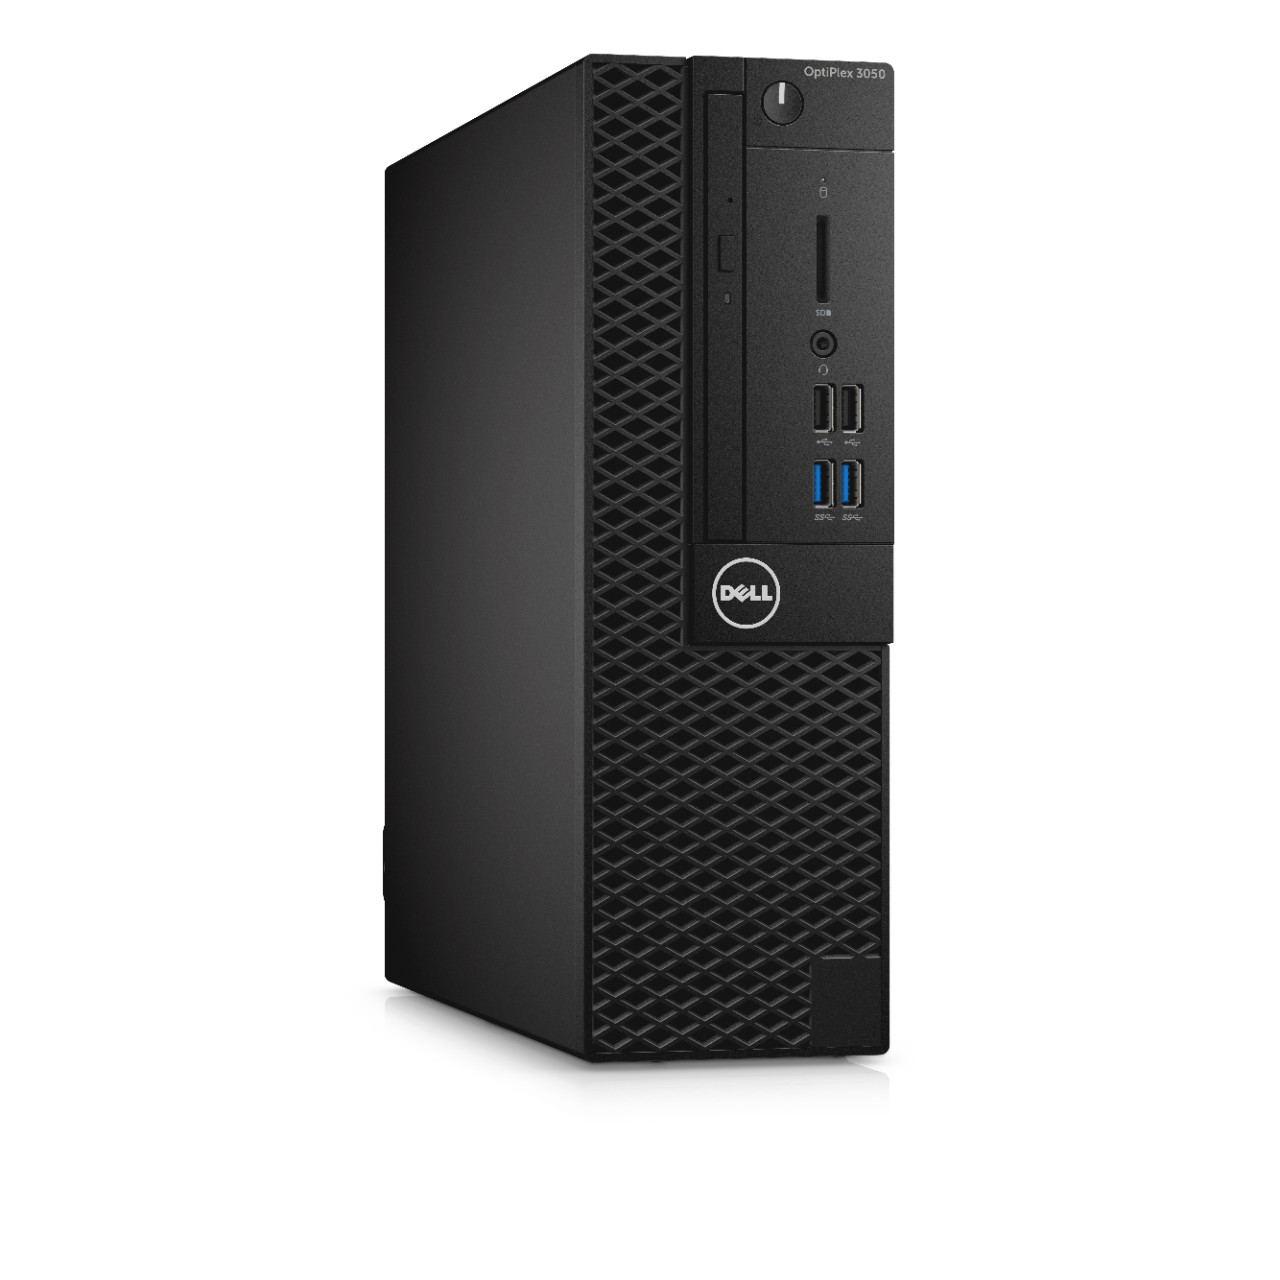 Dell PC Optiplex 3050 SF i5-7500/8G/256GB SSD/DP/HDMI/DVD RW/W10P/3RNB